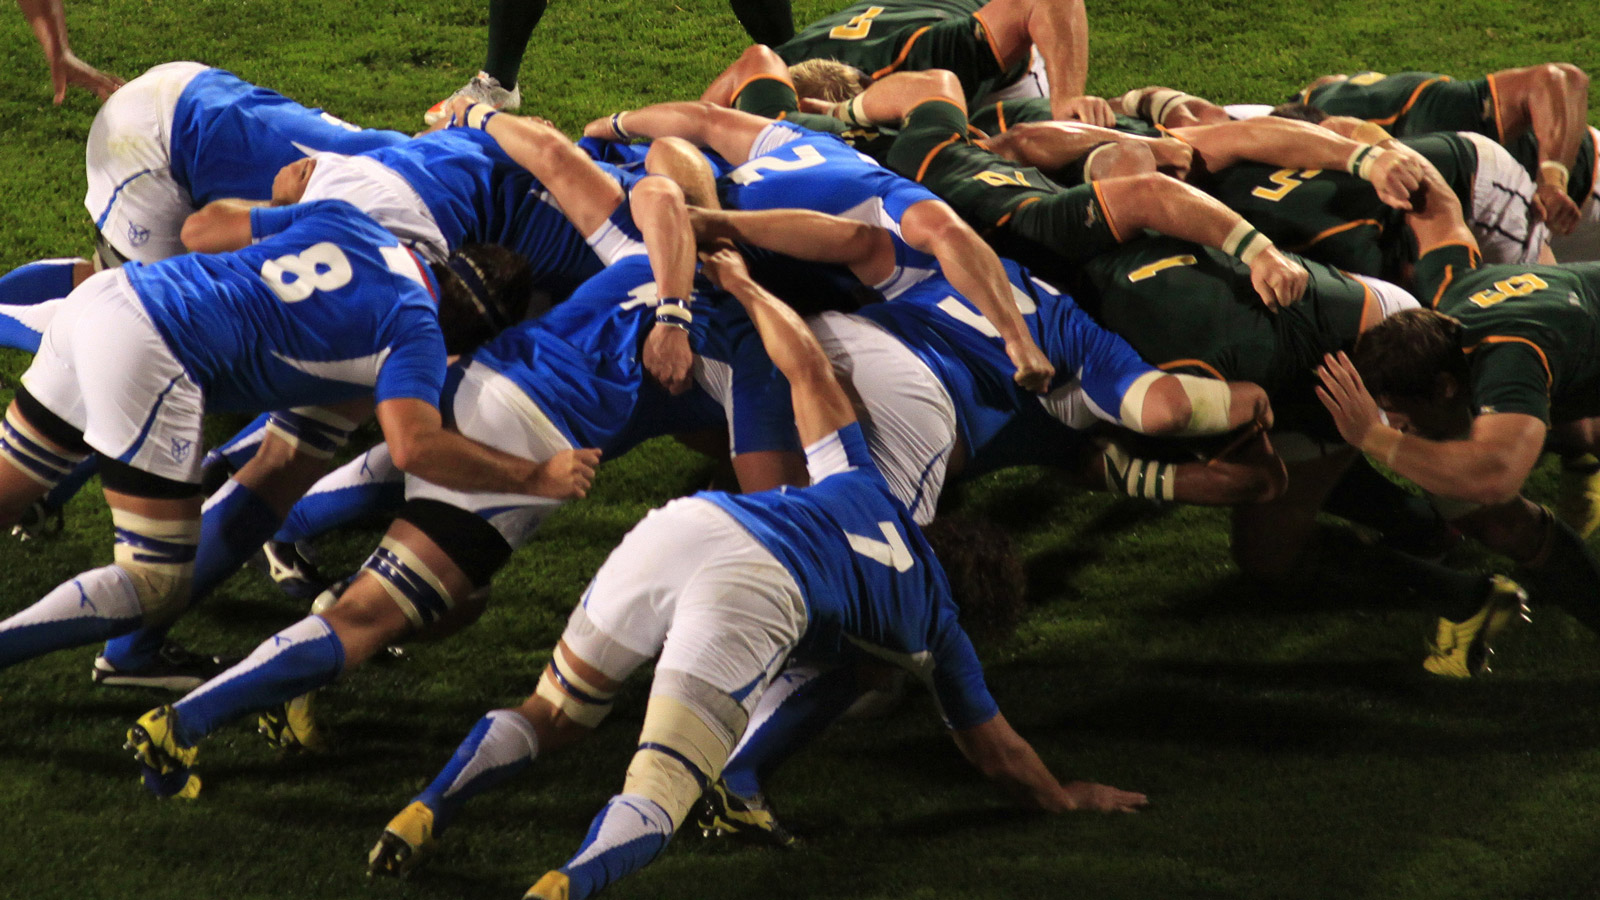 Olbg betting rugby do you get your stake back on a bet